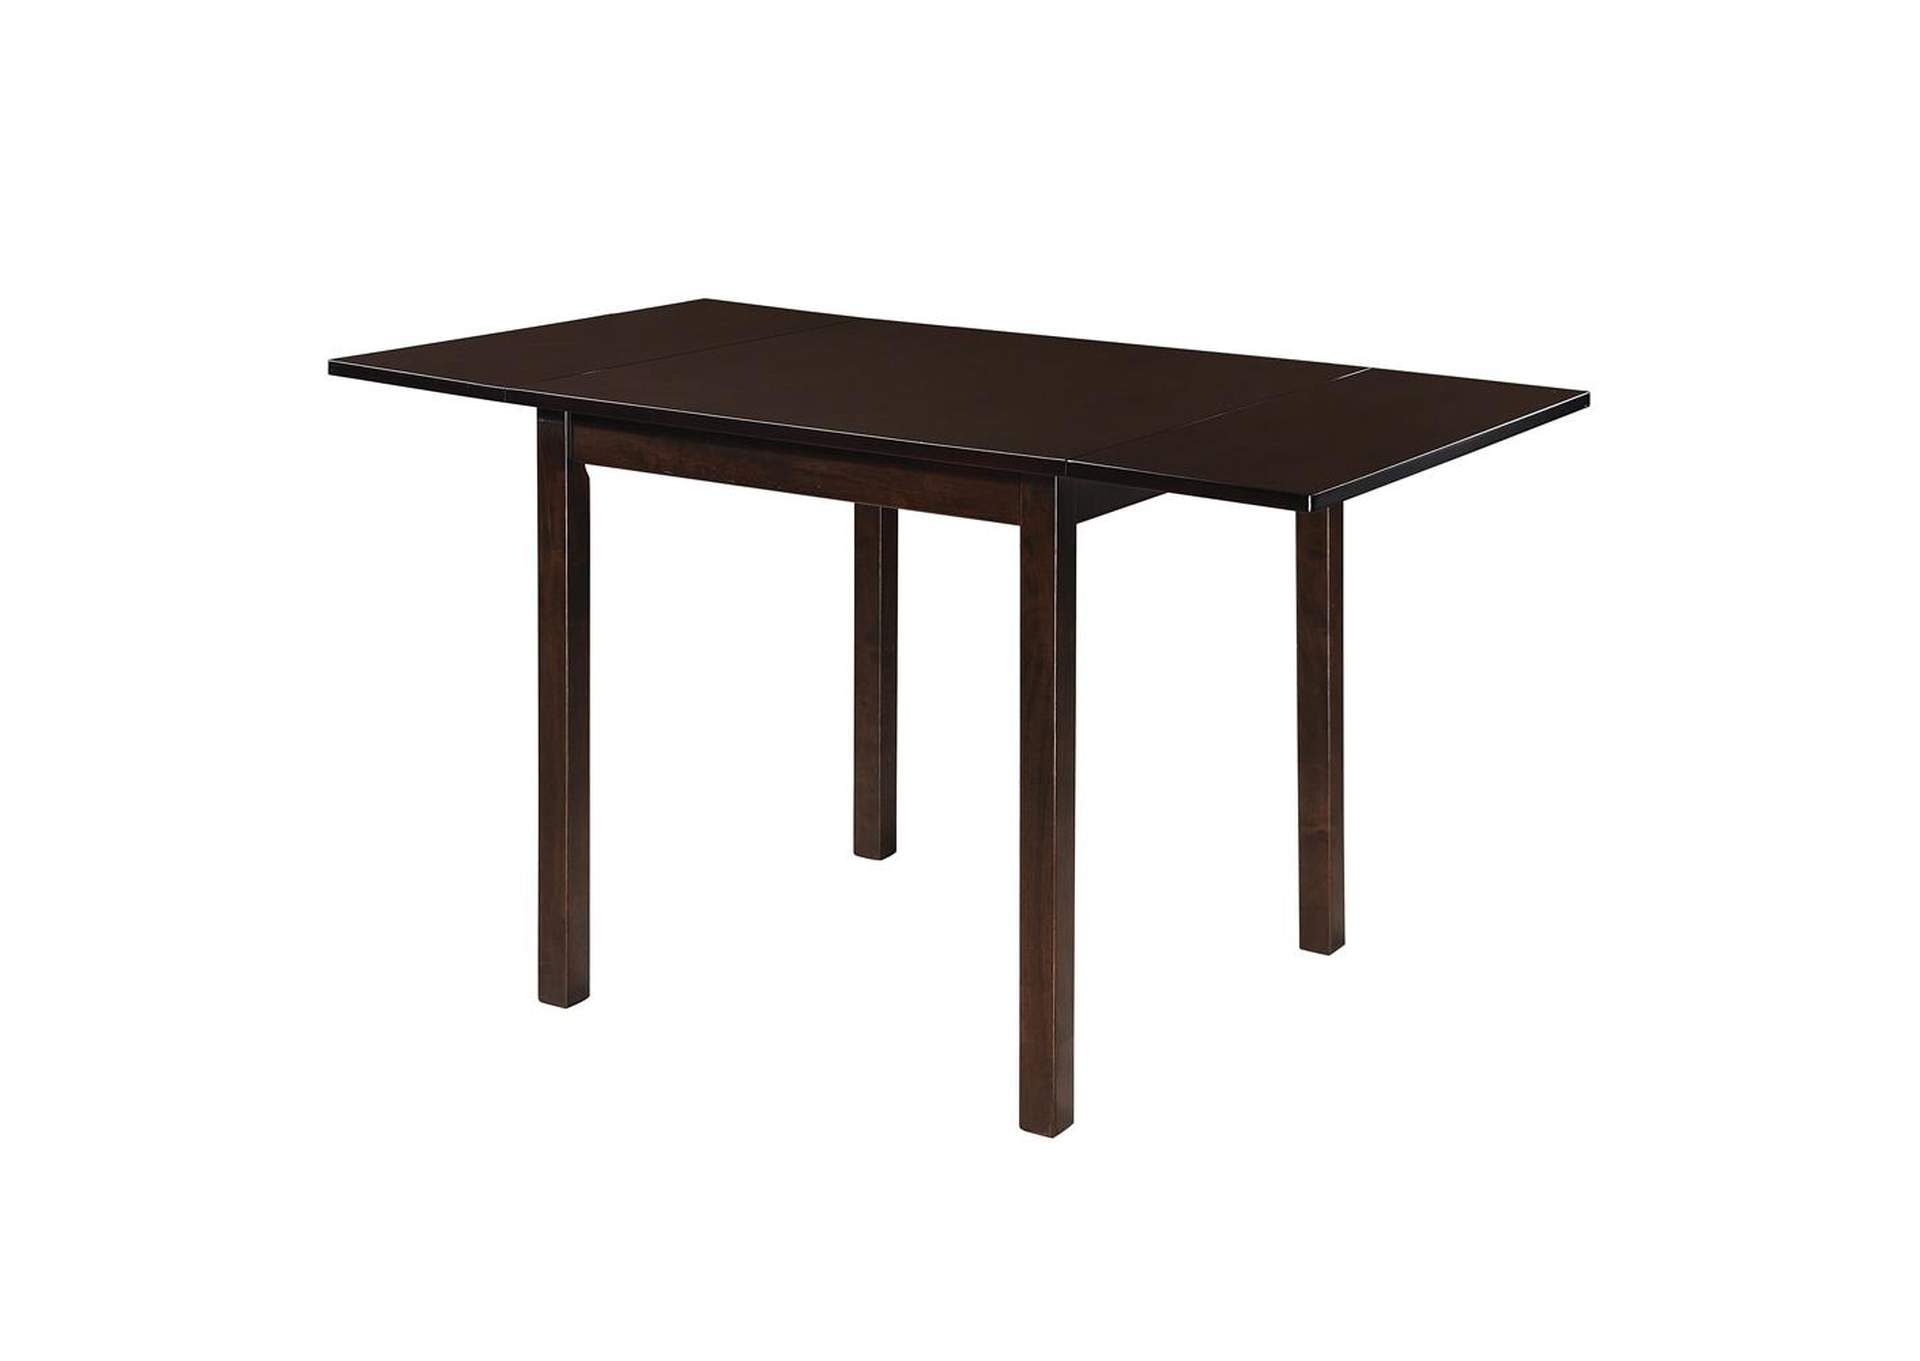 Treehouse Kelso Casual Cappuccino Dining Table,Coaster Furniture